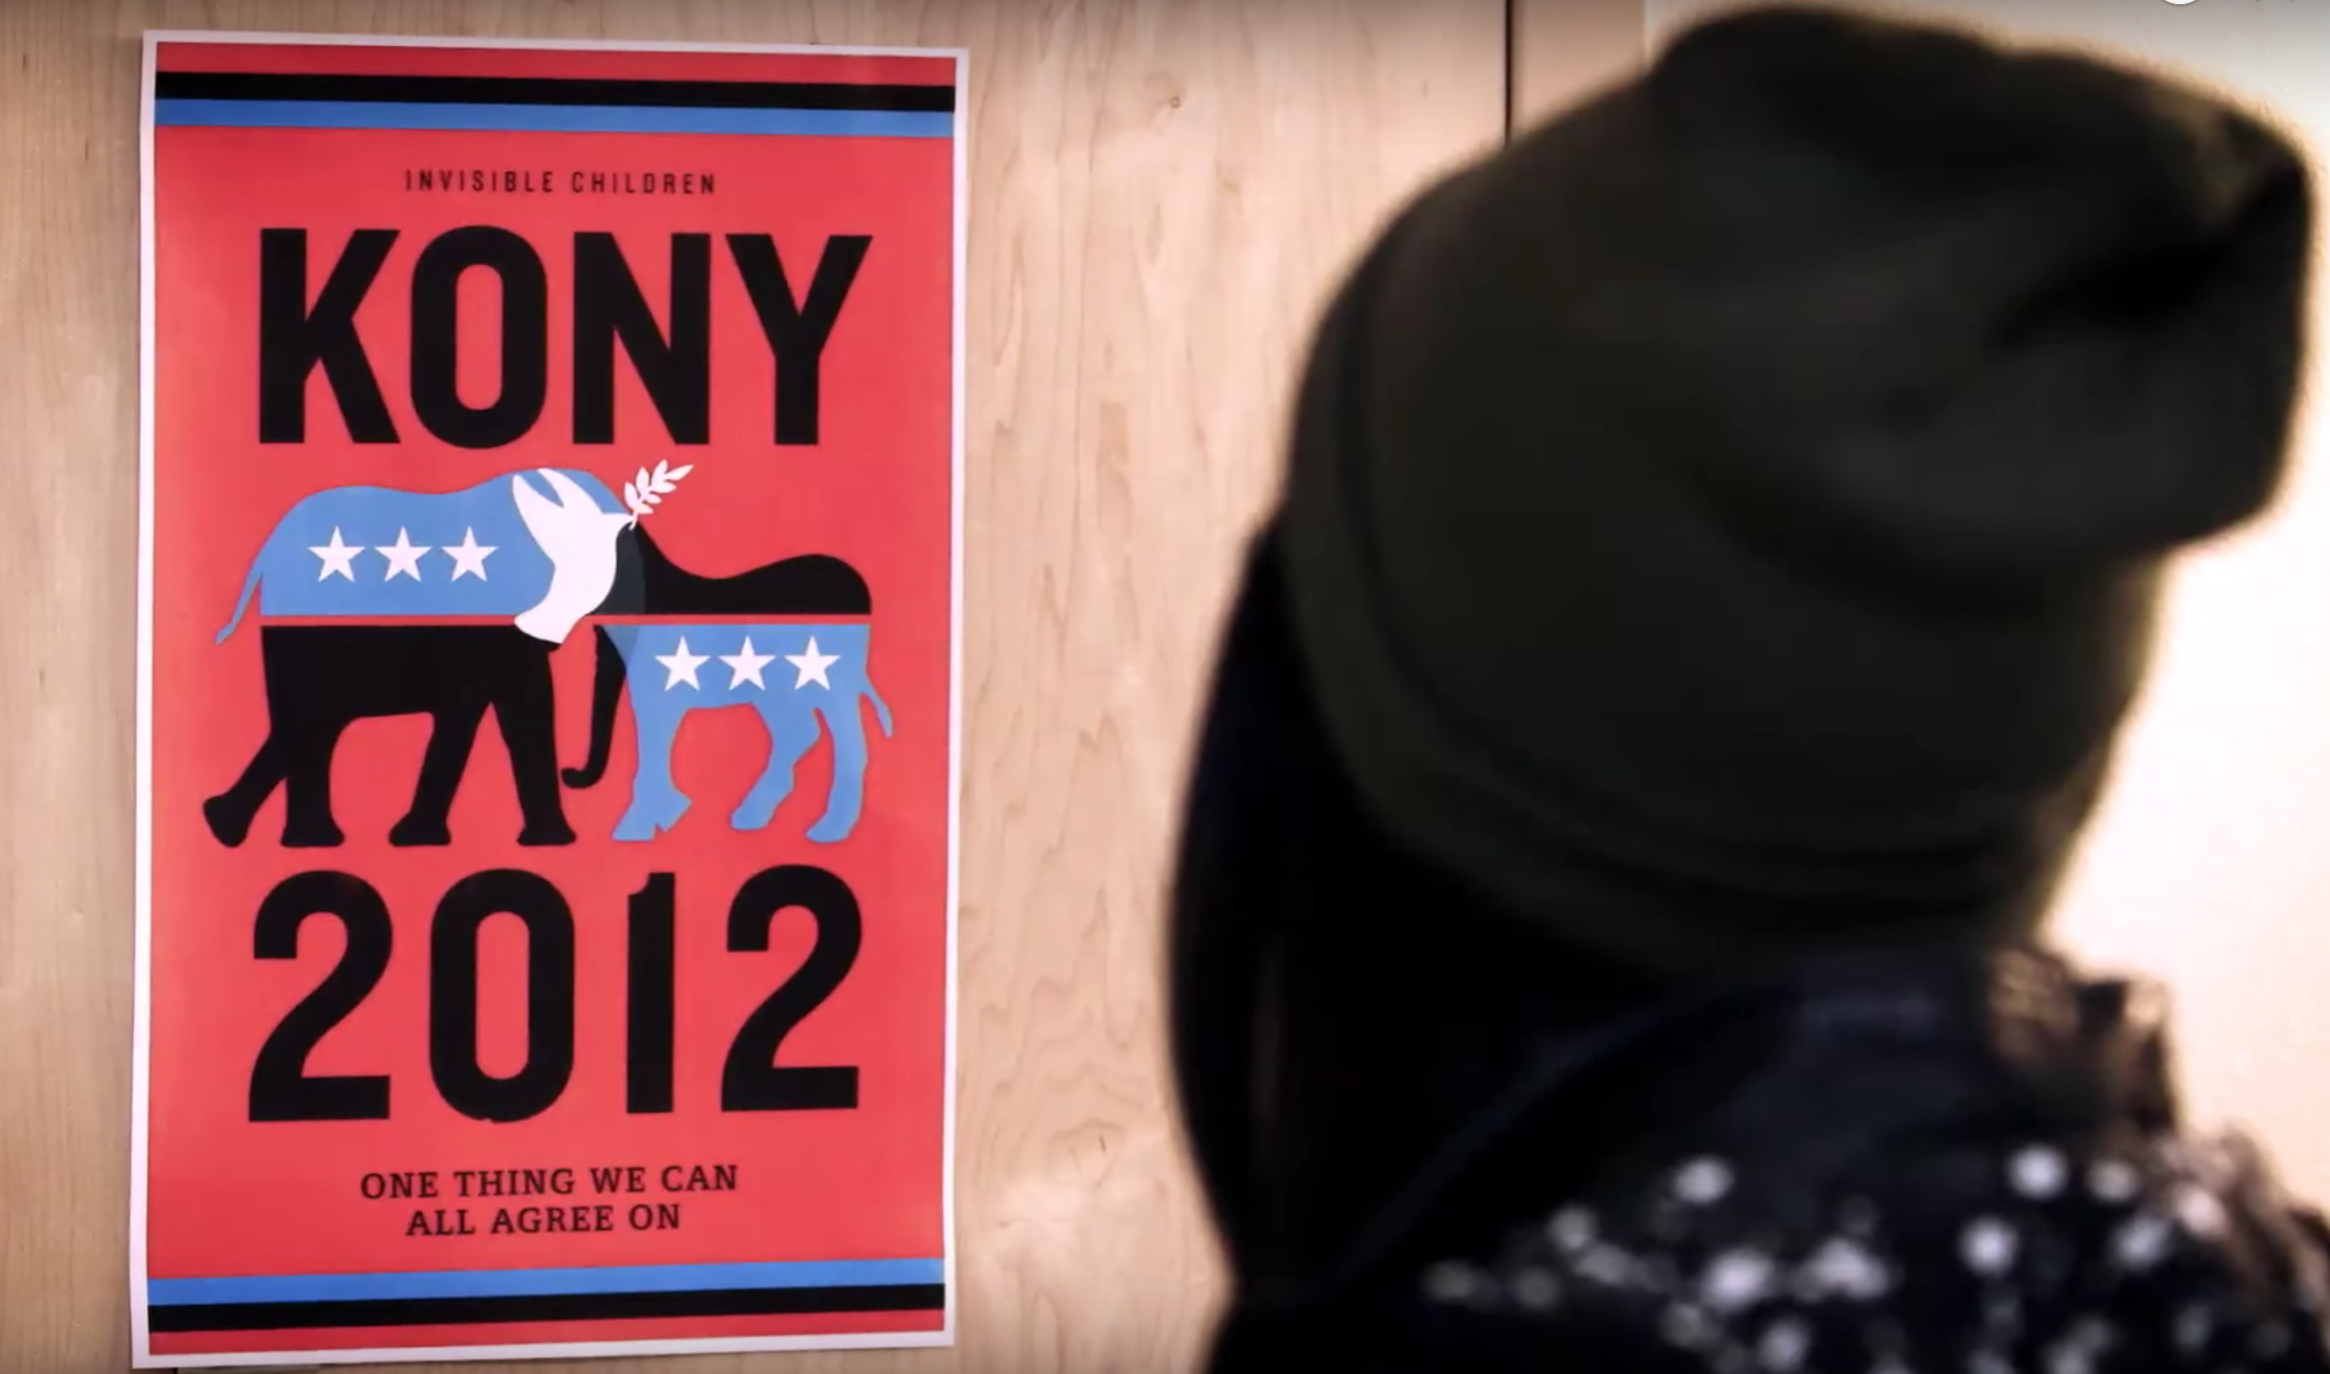 """Source: Screenshot by author from """" KONY 2012 """" YouTube video."""